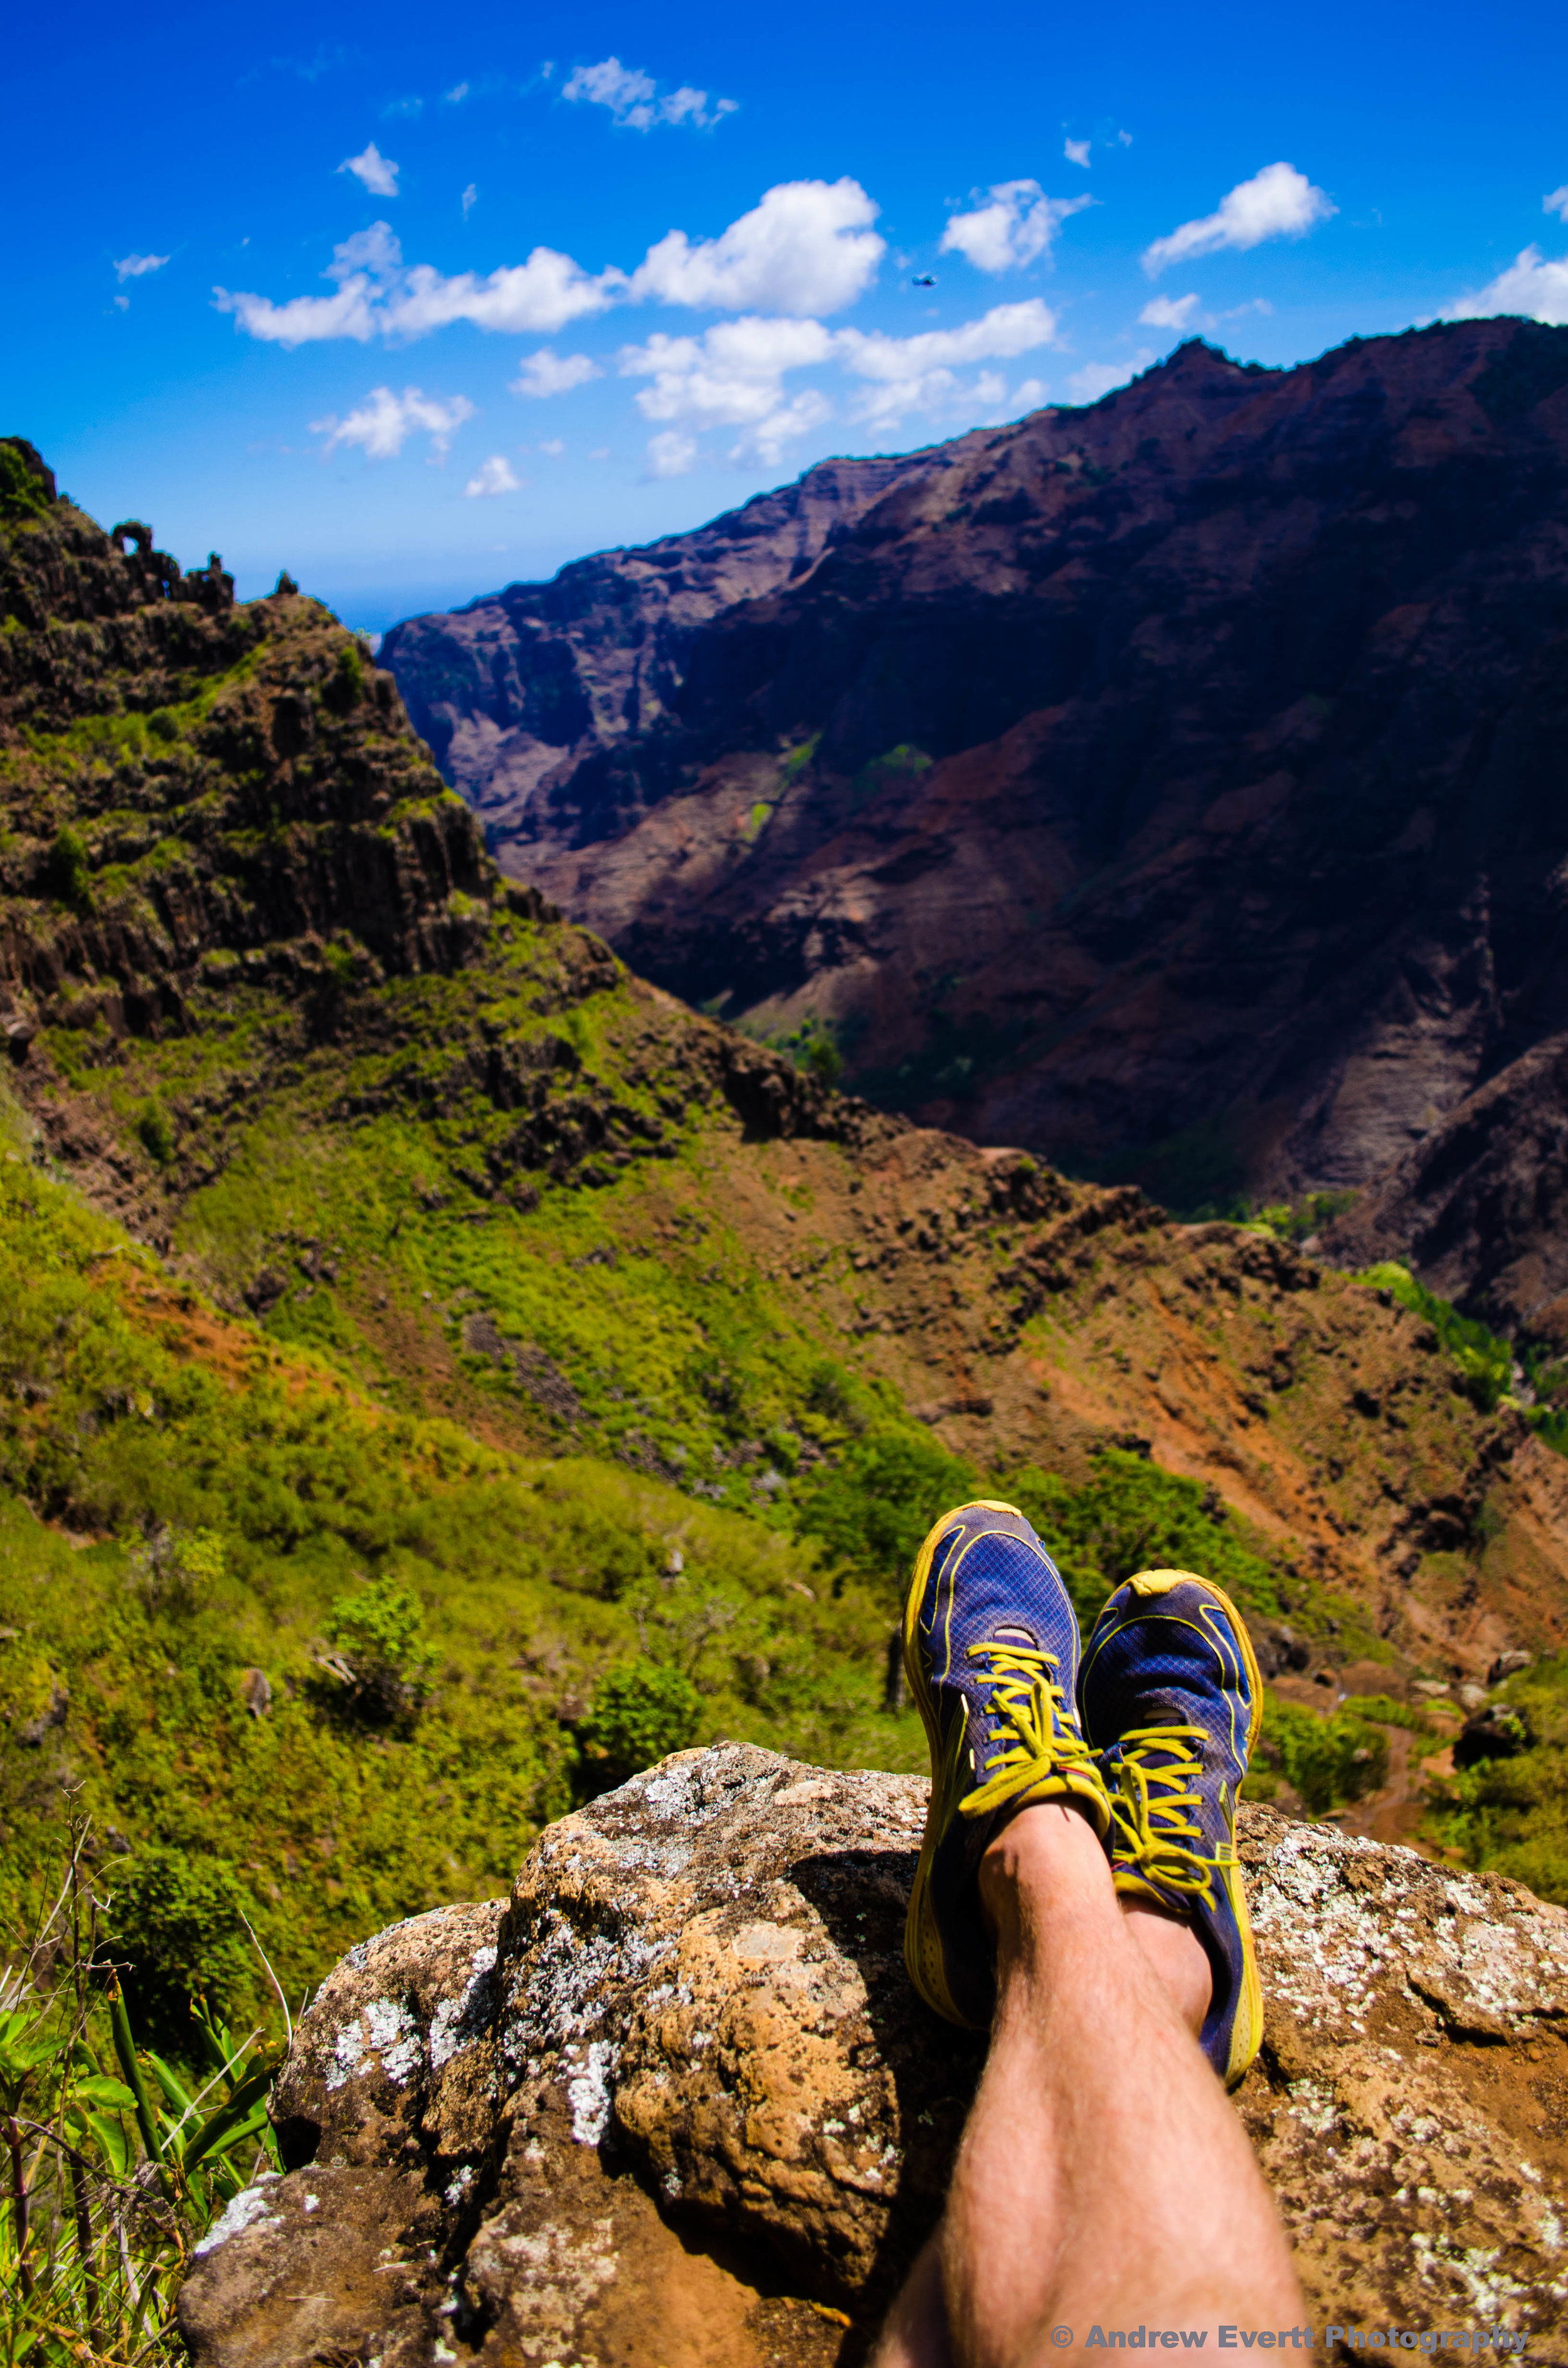 The view overlooking the Waimea Canyon from the end of the Canyon Trail